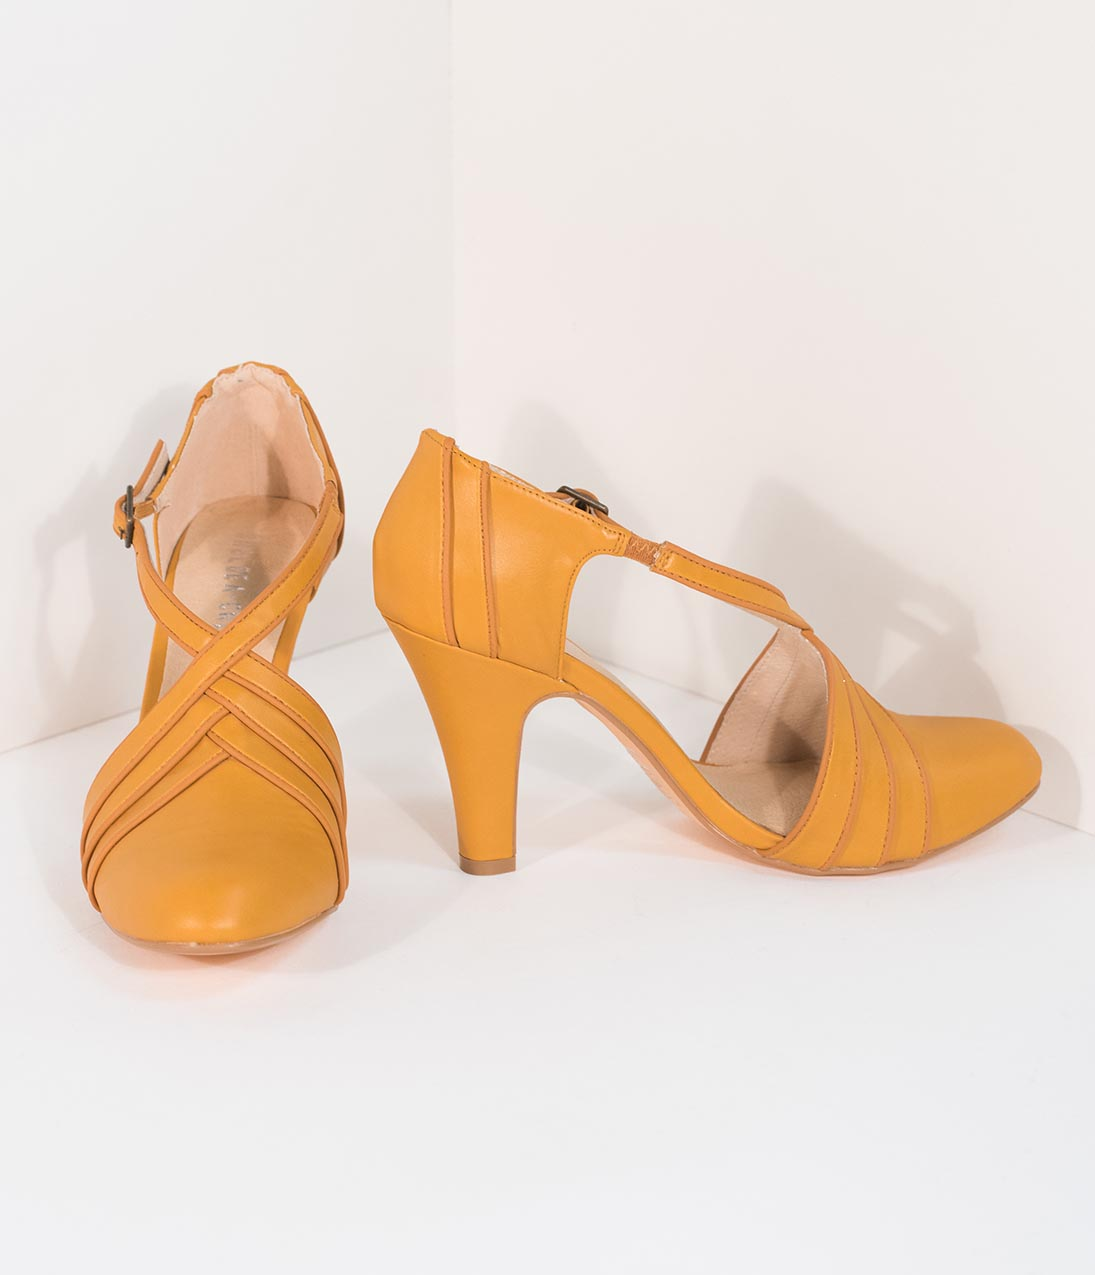 Pin Up Shoes- Heels, Pumps & Flats Chelsea Crew Vintage Style Mustard Yellow Leatherette DOrsay Lana Heels $64.00 AT vintagedancer.com